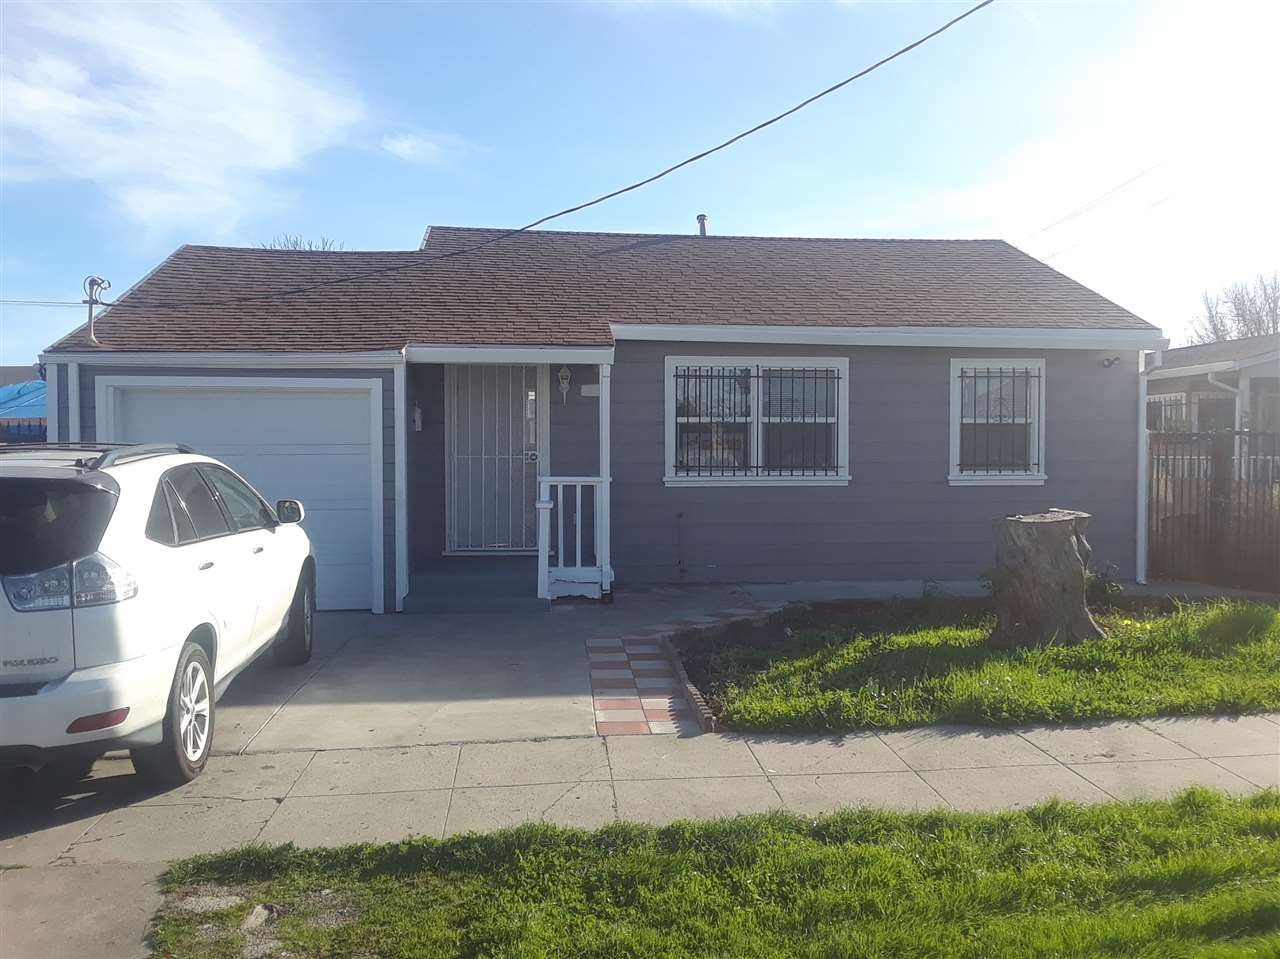 3616 WALLER AVE, RICHMOND, CA 94804